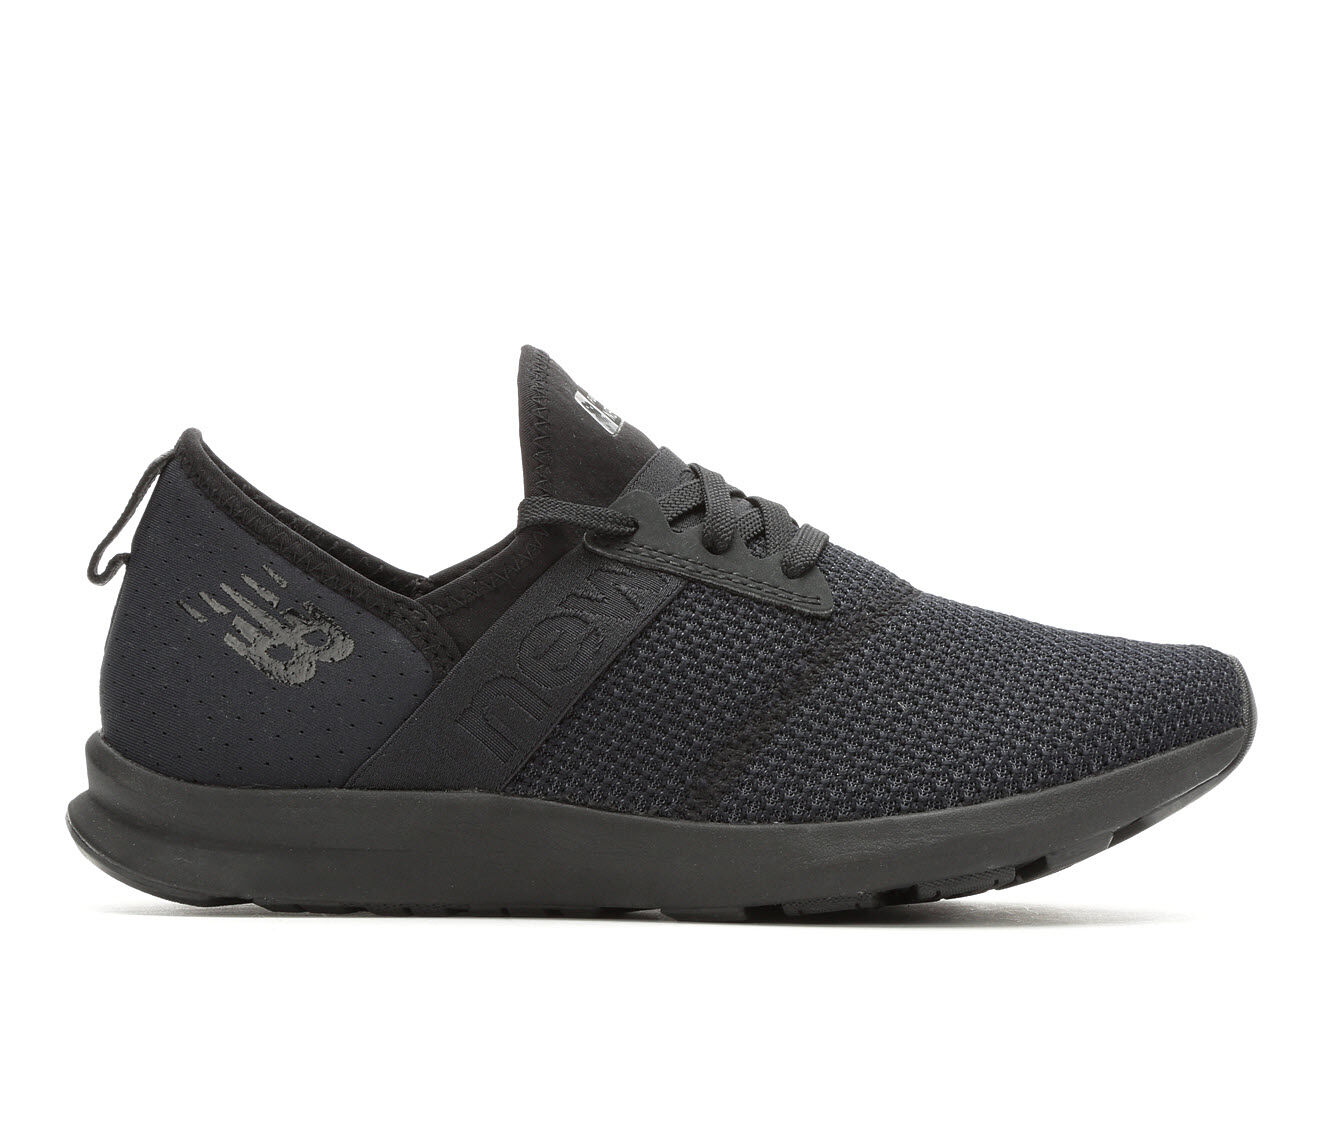 limited time Women's New Balance FuelCore Nergize Sneakers Black/Magnet